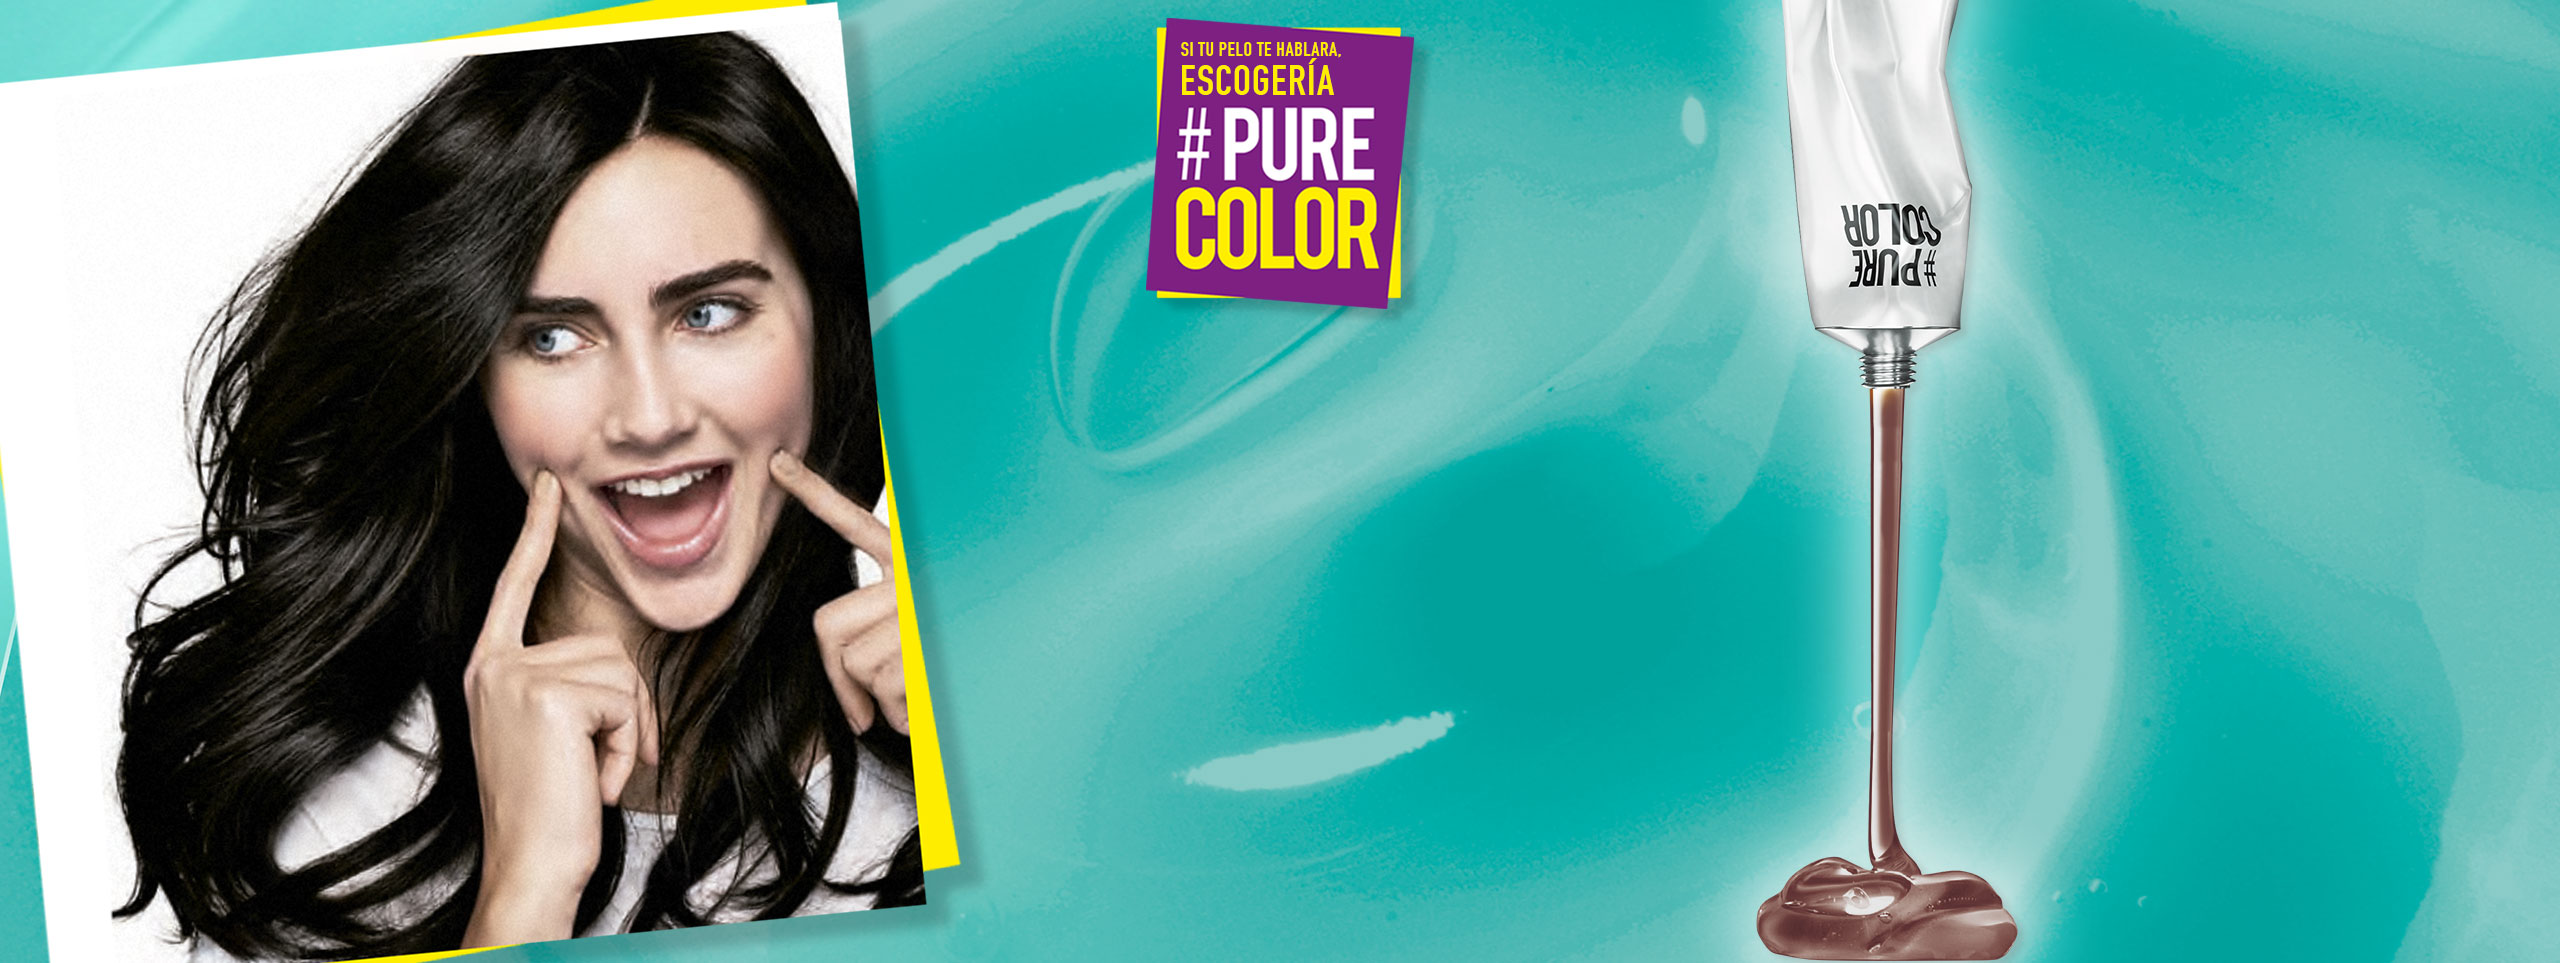 pure-color_negros